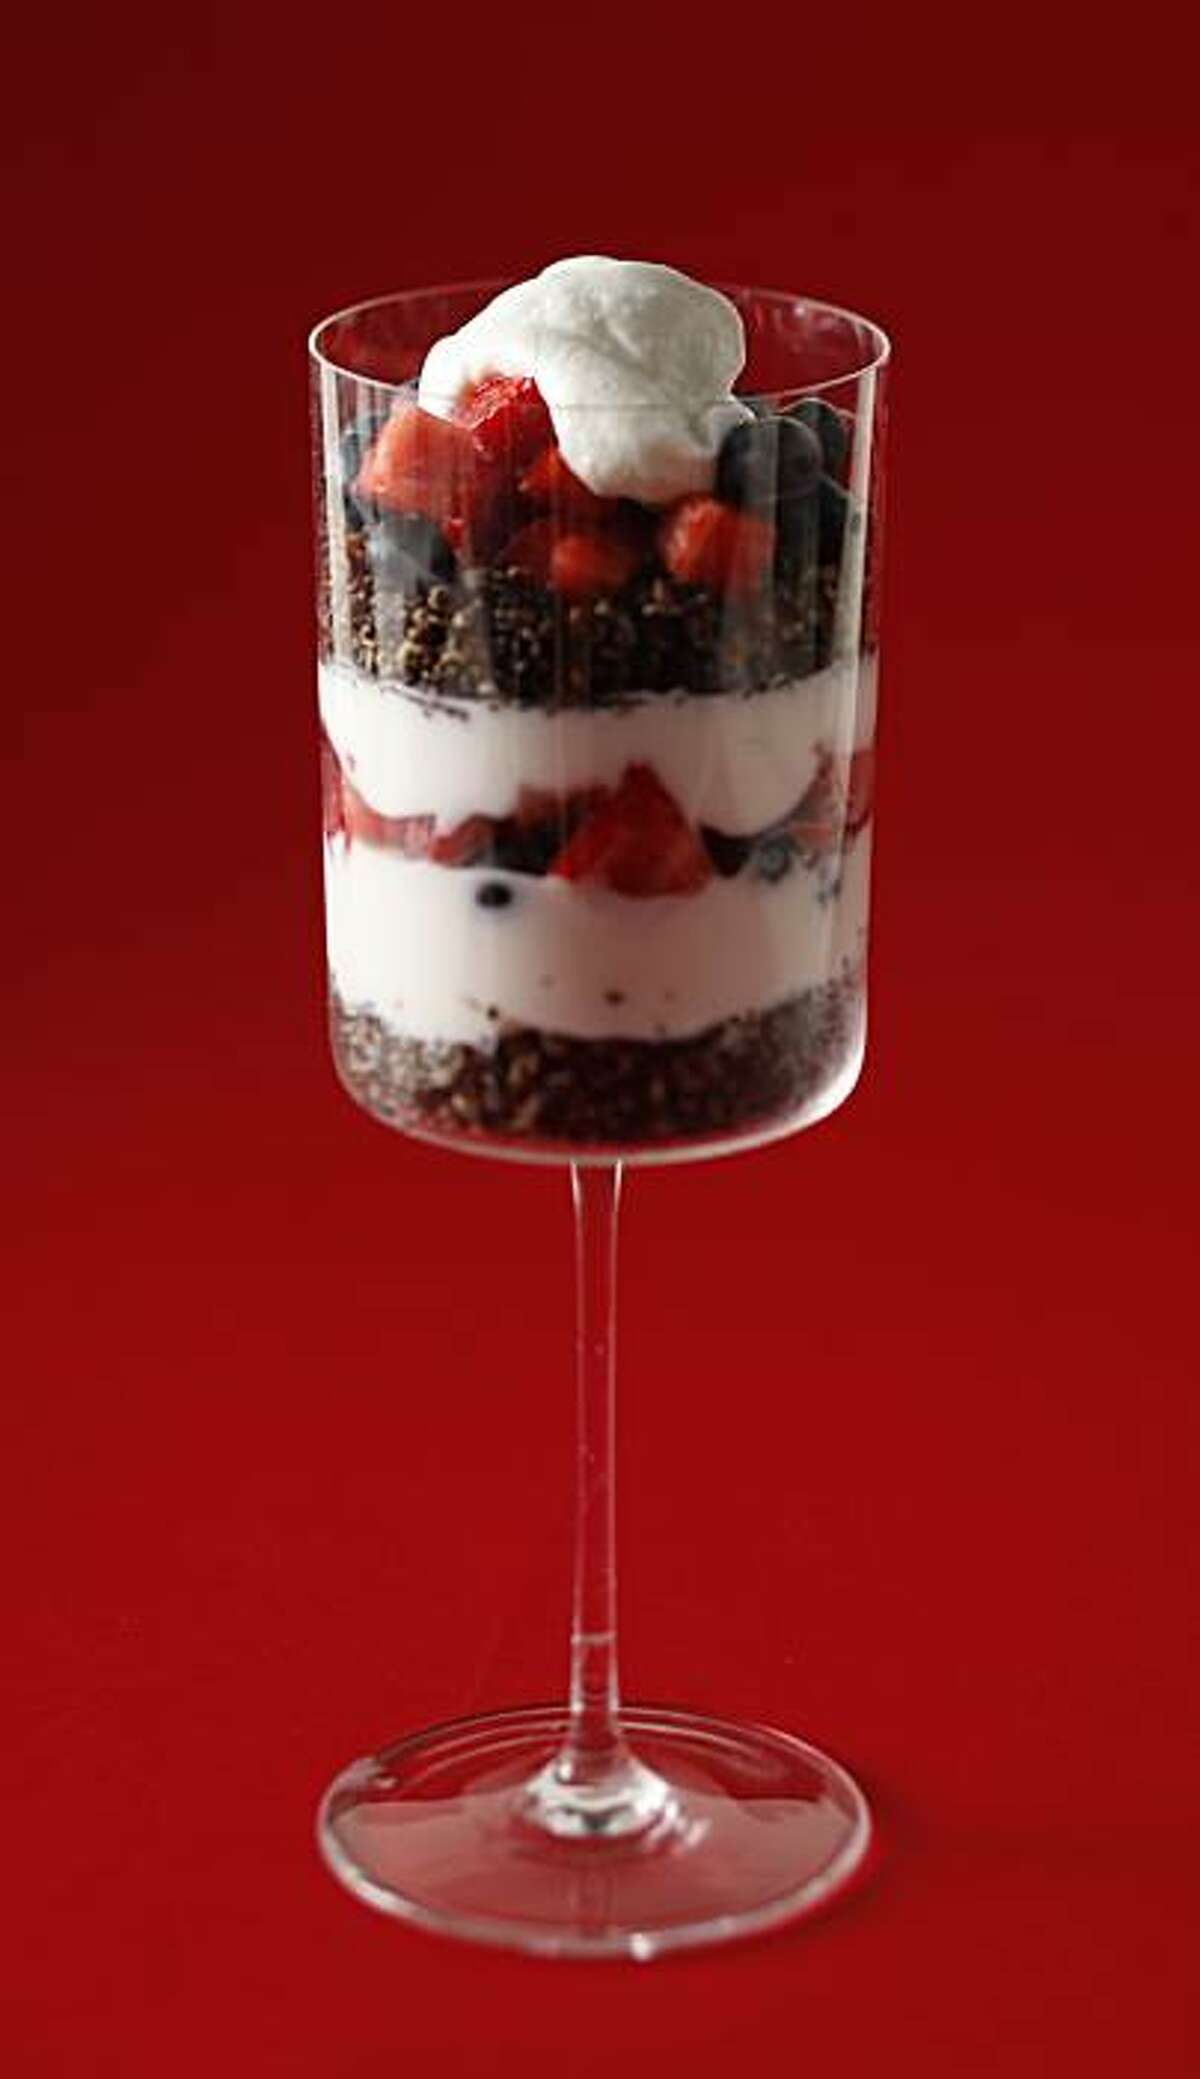 Parfait in San Francisco, Calif., on March 10, 2010. Food styled by Janny Hu.